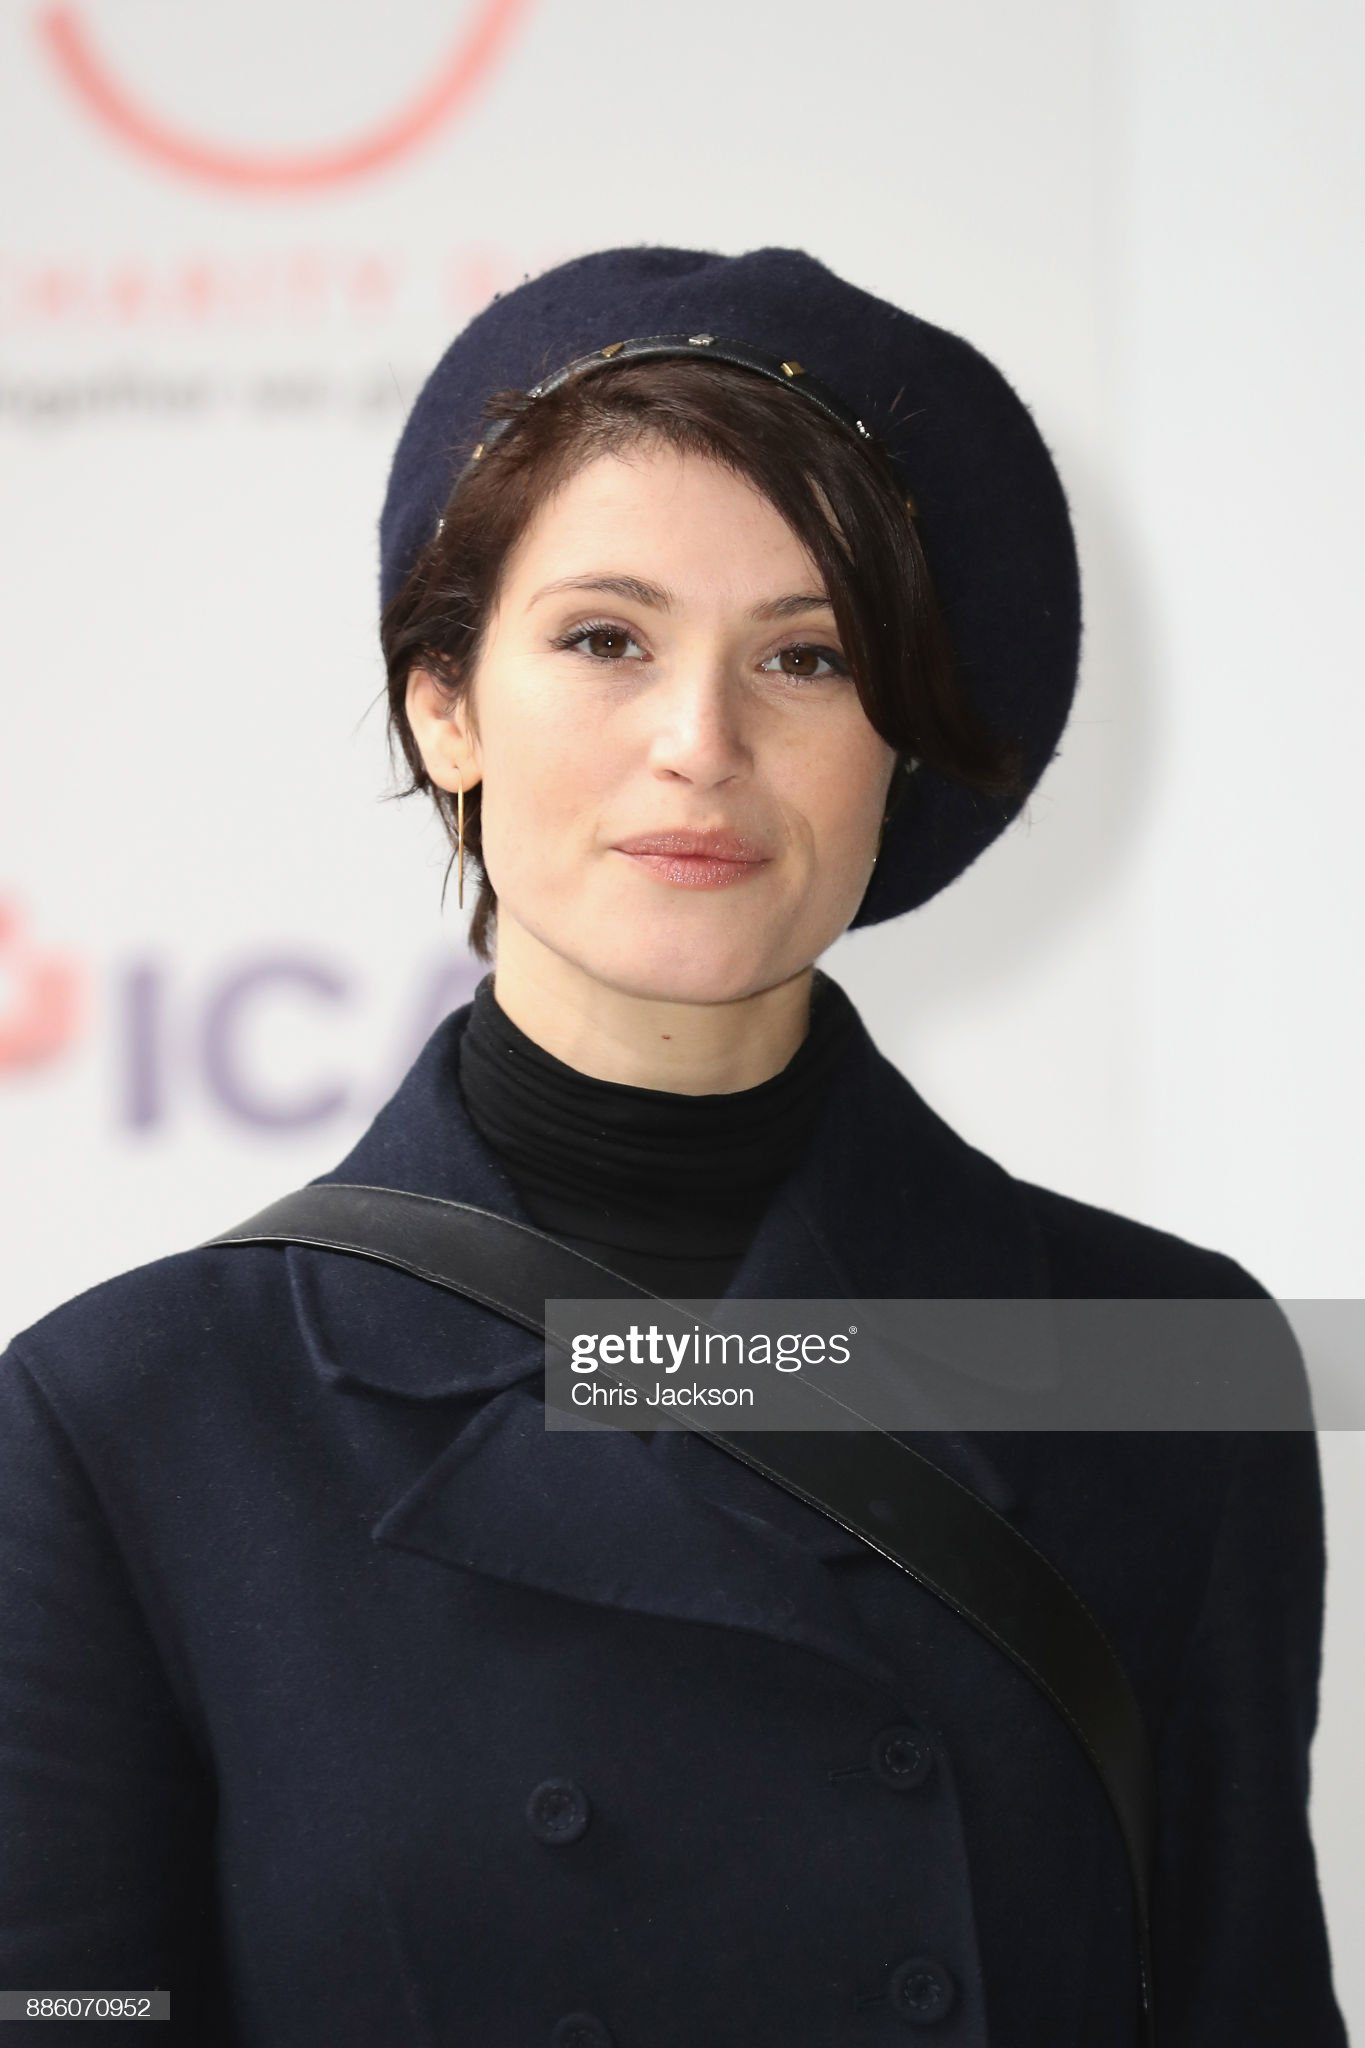 gemma-arterton-attends-the-annual-icap-charity-day-at-icap-on-5-2017-picture-id886070952